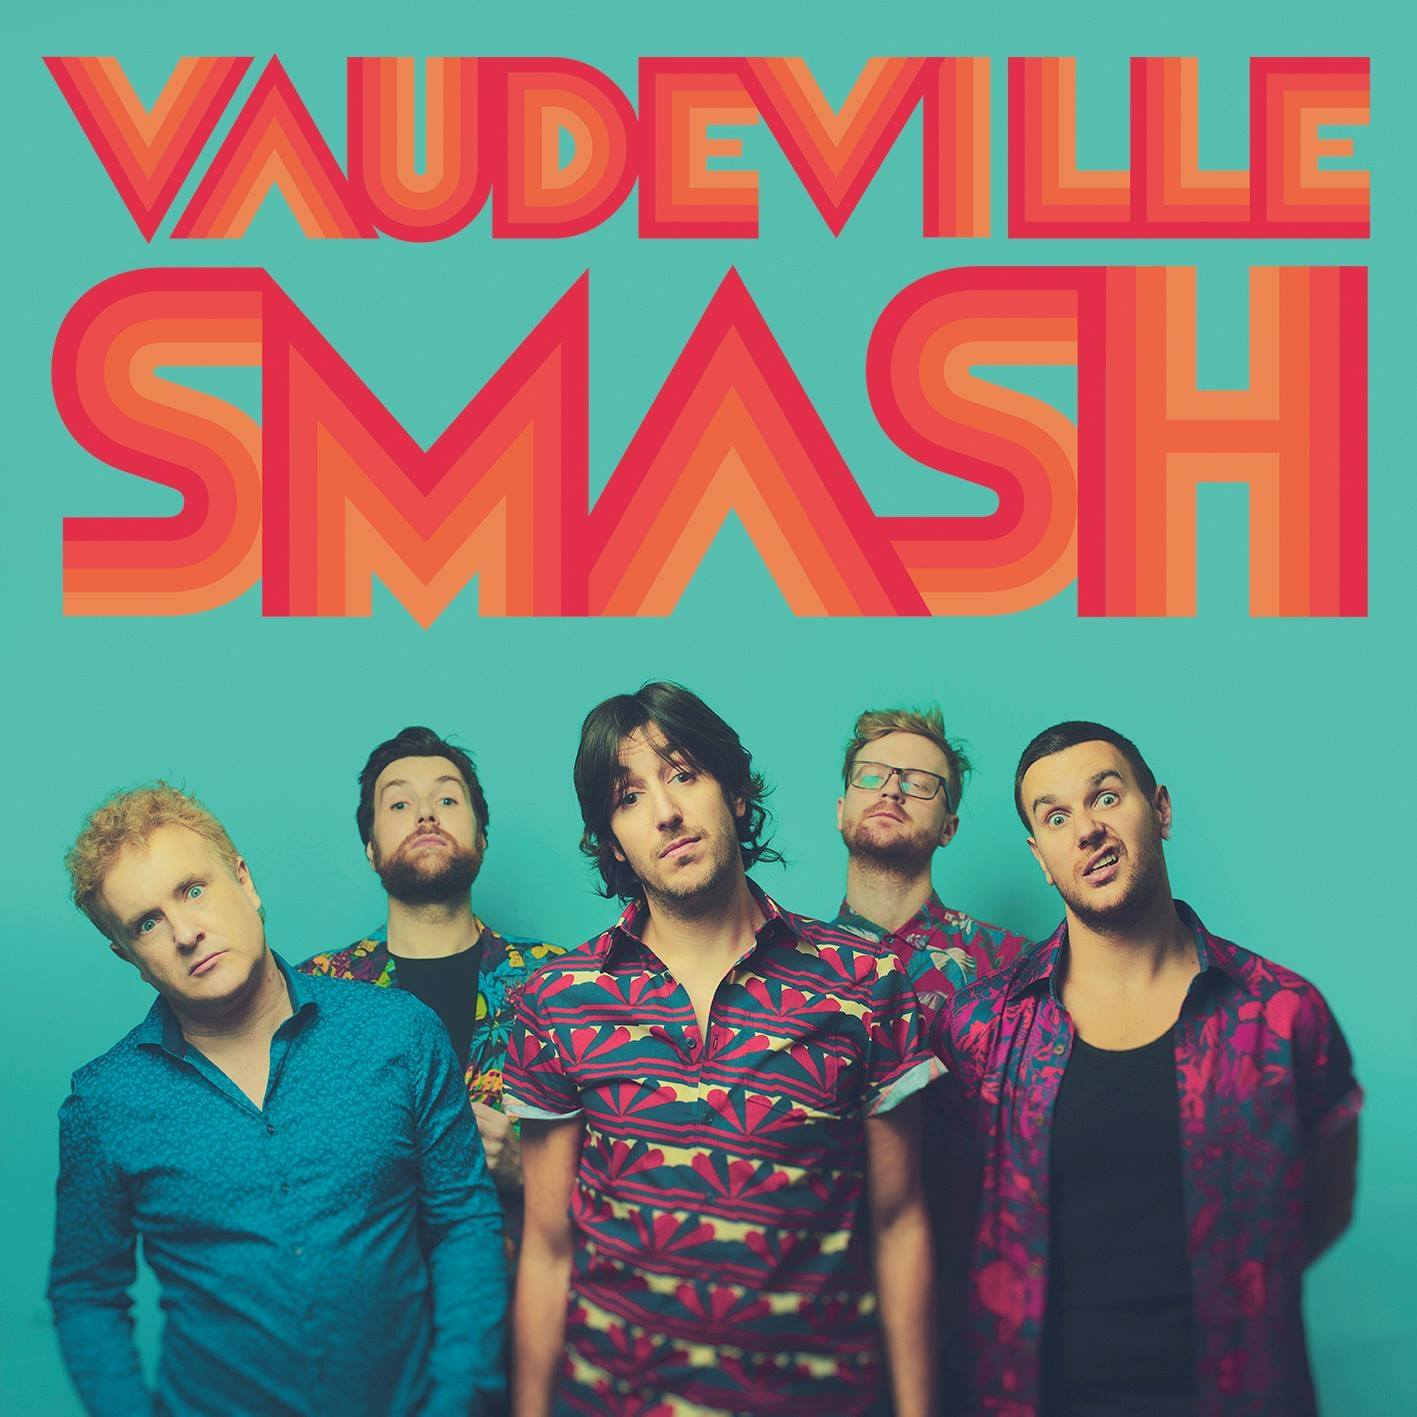 The Vaudeville Smash - JUNE 14/15